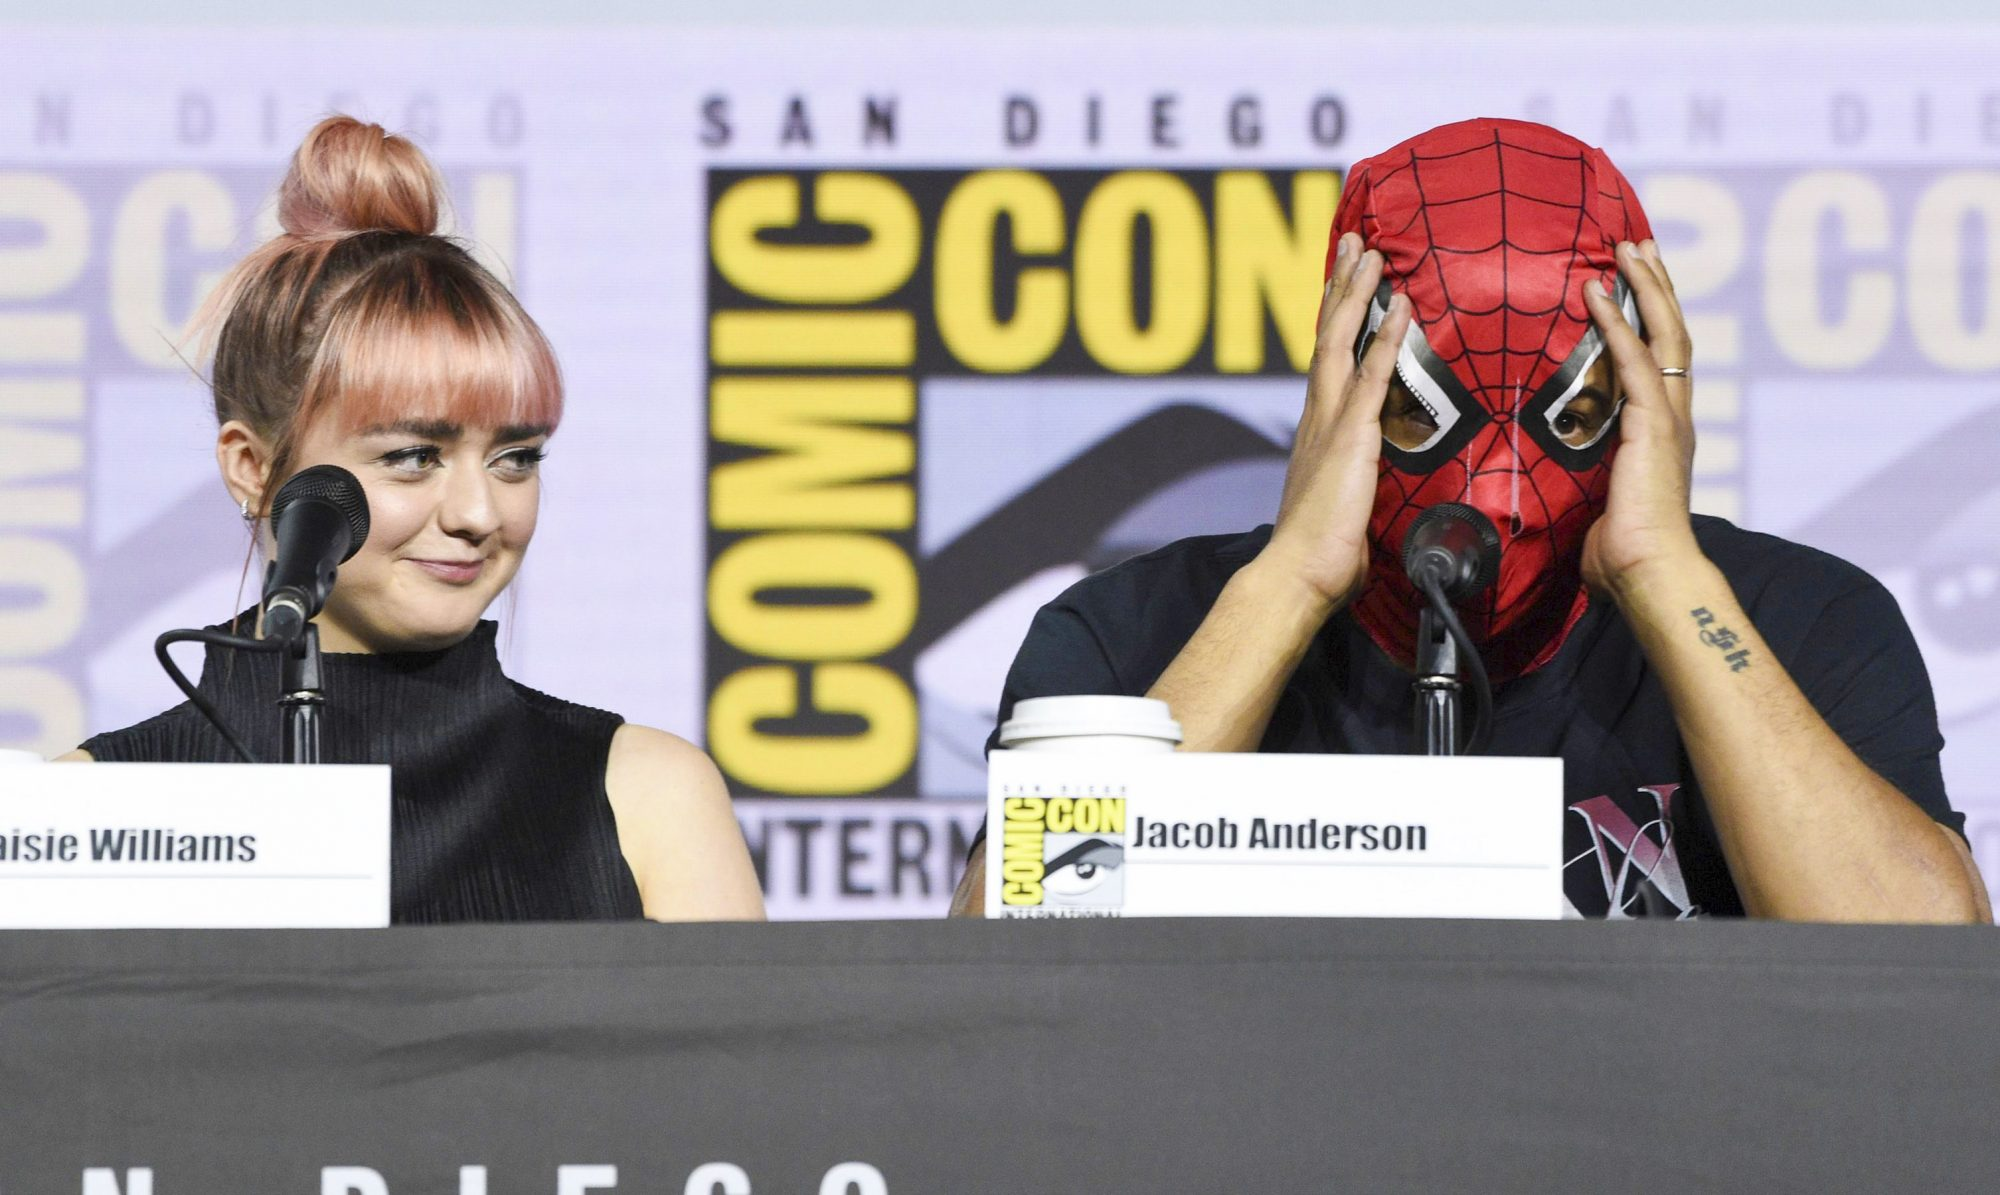 """Mandatory Credit: Photo by Chris Pizzello/Invision/AP/Shutterstock (10342099j) Maisie Williams, Jacob Anderson. Maisie Williams, left, looks at Jacob Anderson as he puts on a Spider-Man mask during the """"Game of Thrones"""" panel on day two of Comic-Con International, in San Diego 2019 Comic-Con - """"Game of Thrones"""" Panel, San Diego, USA - 19 Jul 2019"""